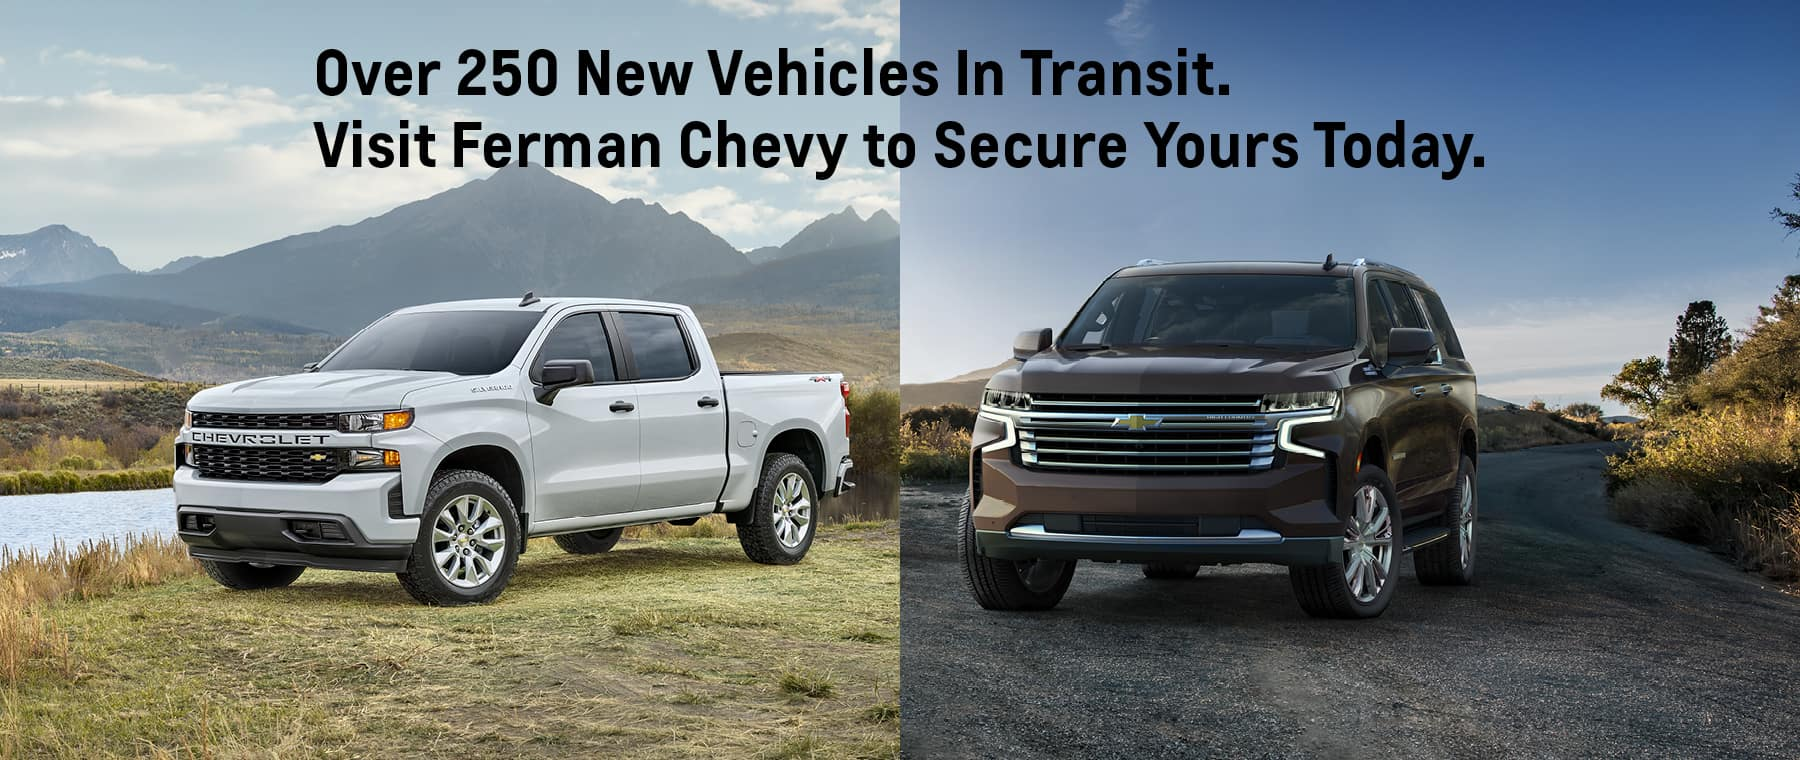 Over 250 New Vehicles in Transit. Visit Ferman Chevy to Secure Yours.